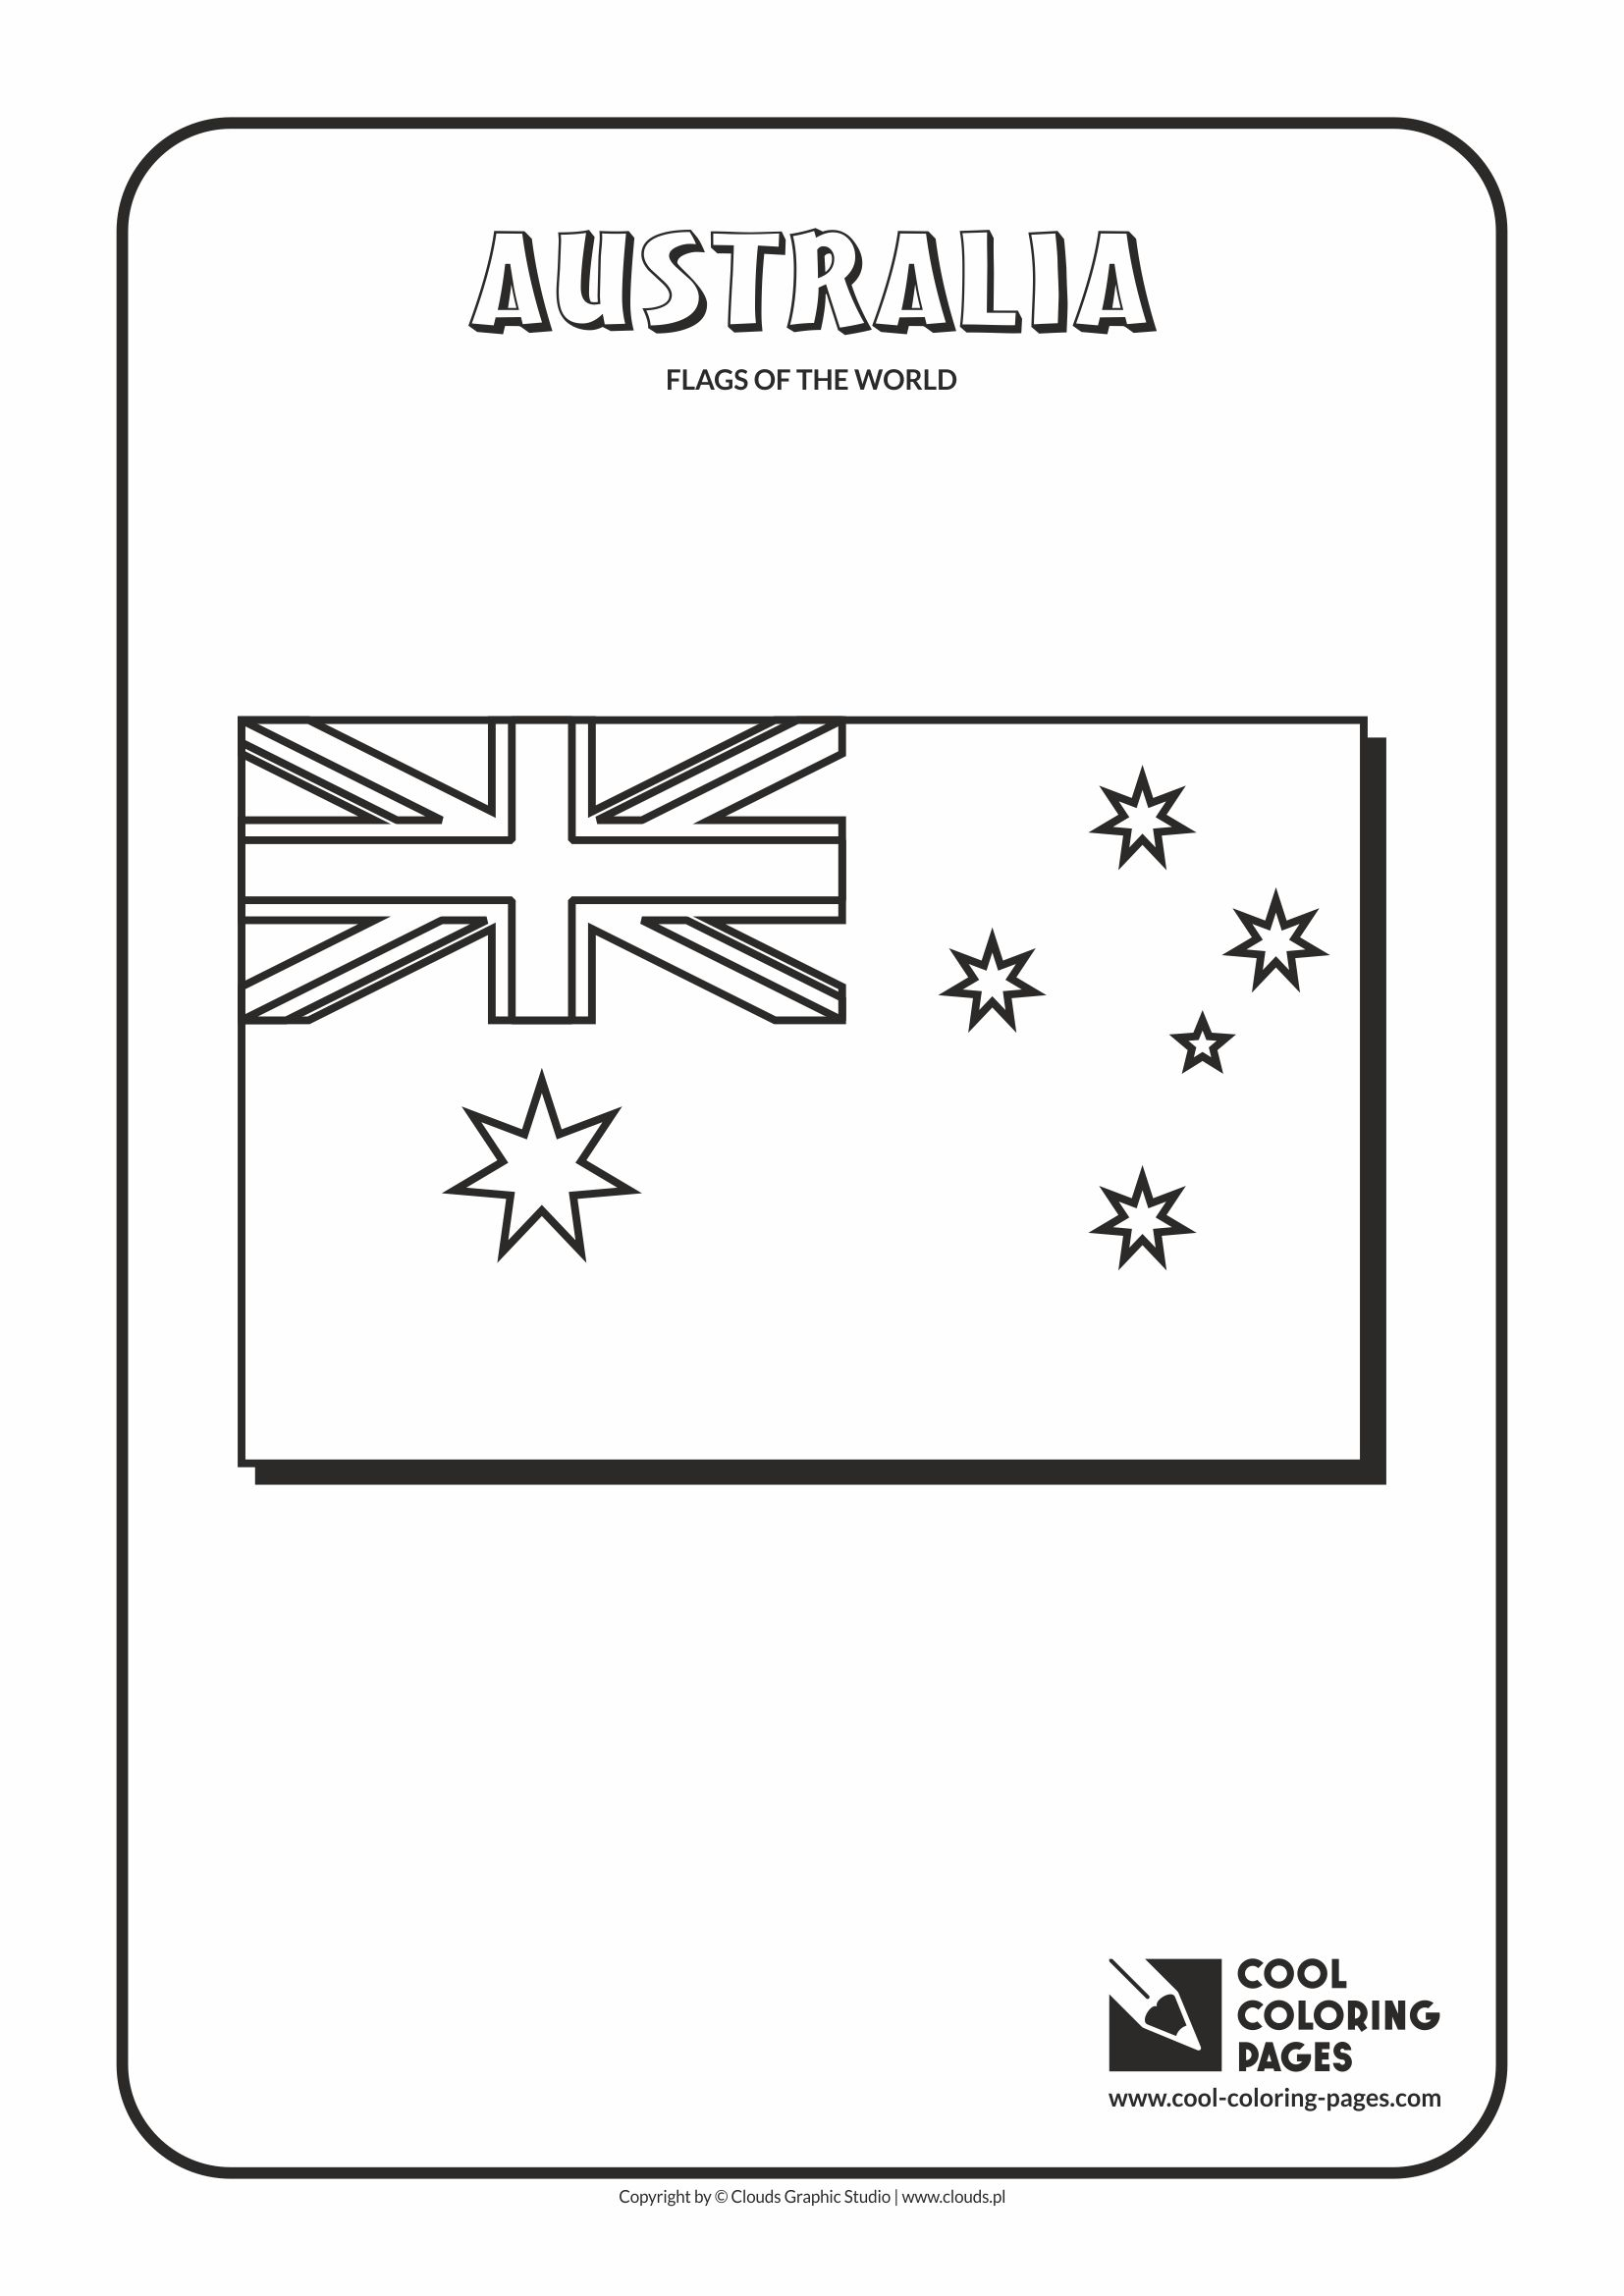 Cool Coloring Pages - Flags of the world / Australia flag